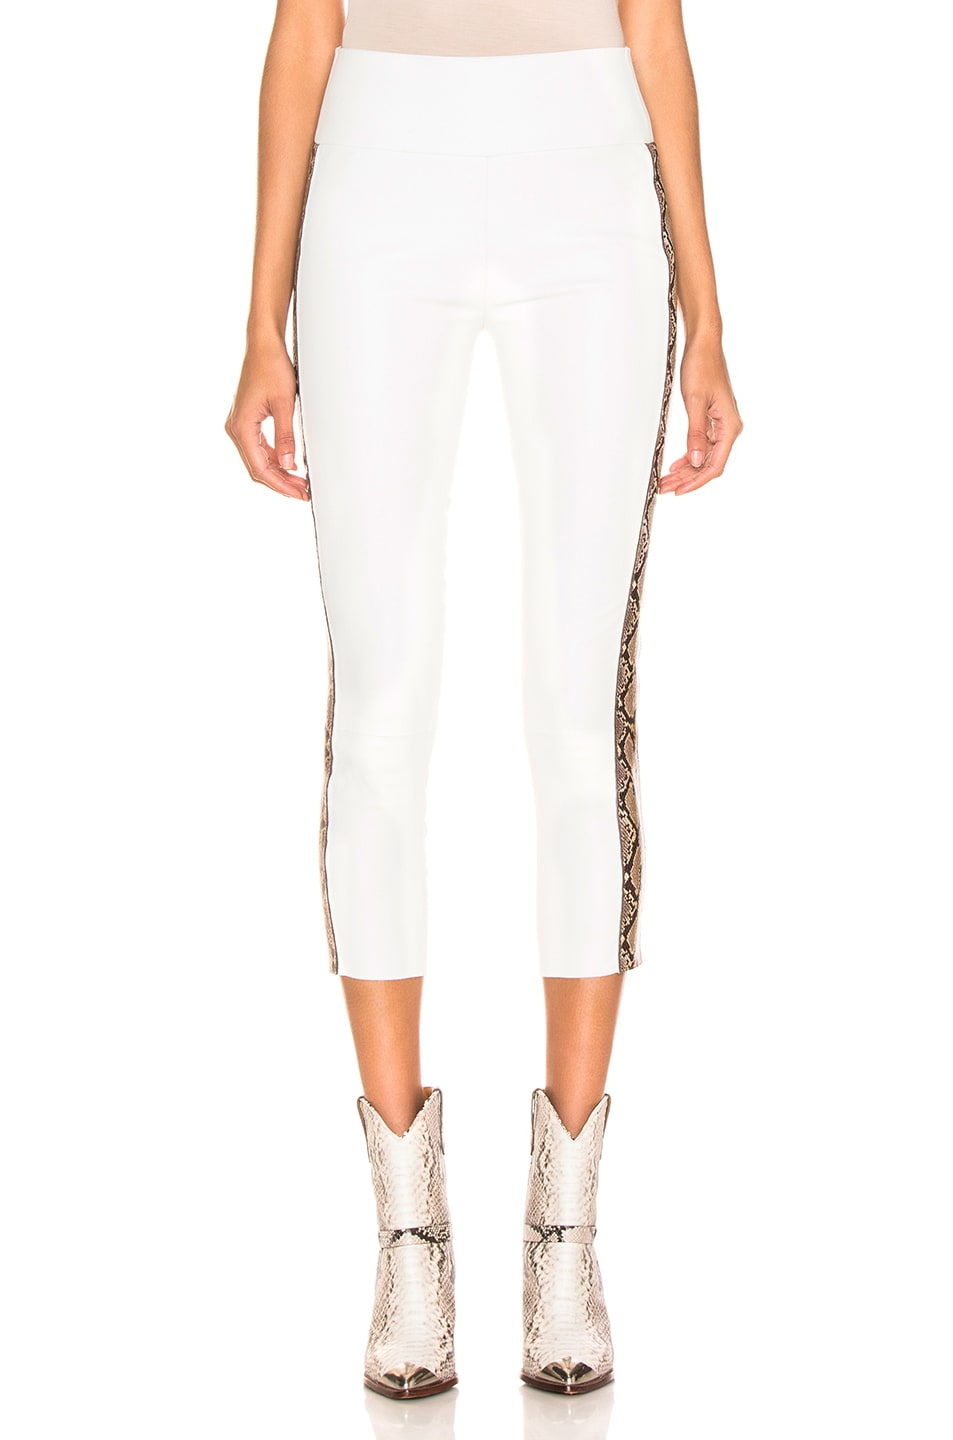 Image 2 of SPRWMN Snake Stripe Capri Legging in White & Tan Snake Print